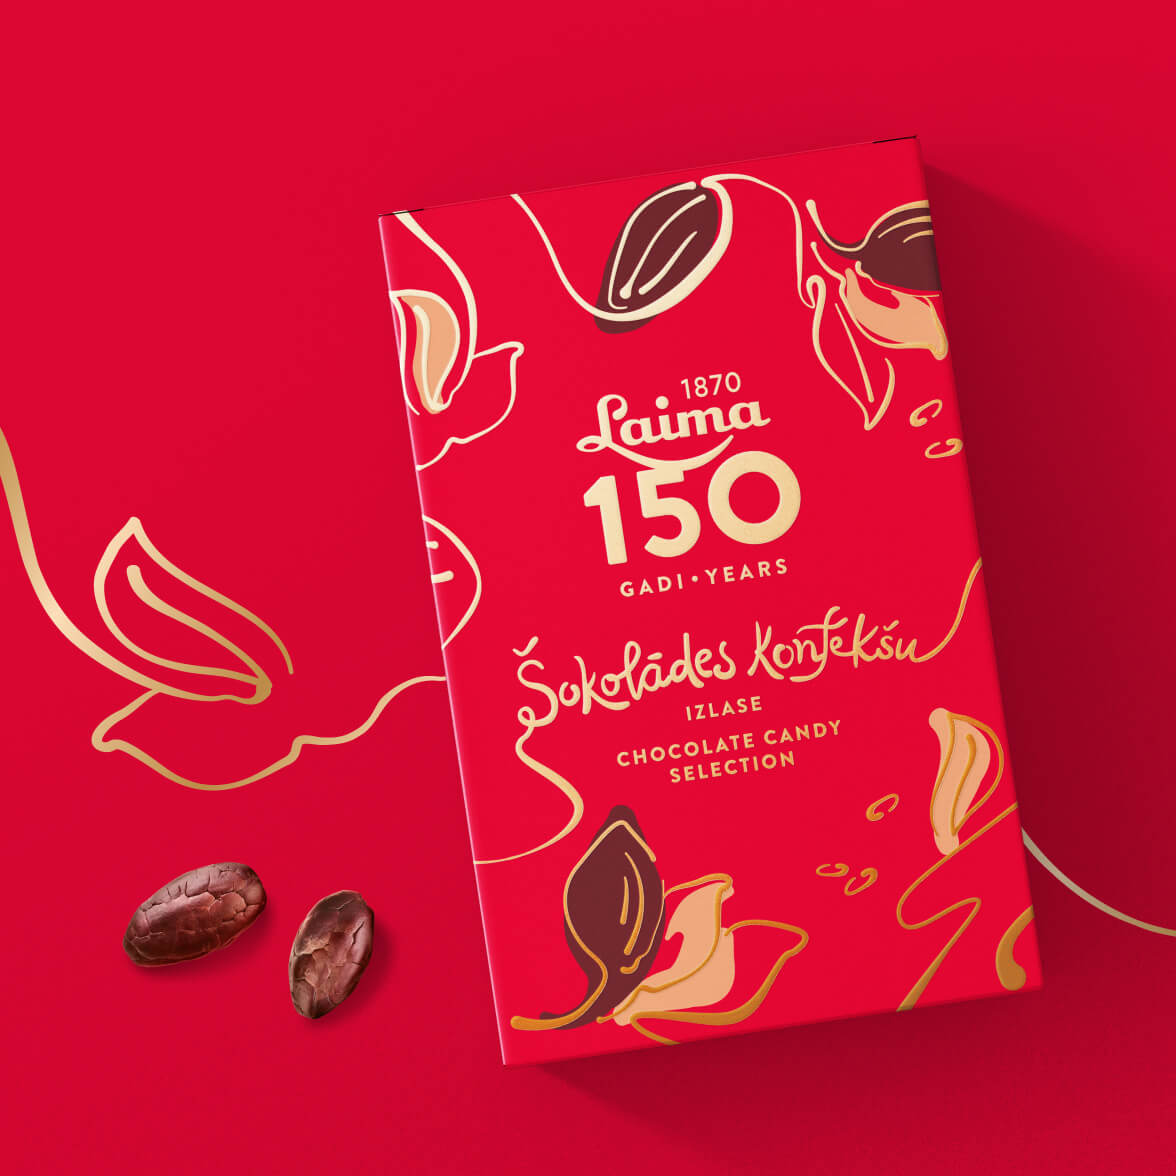 Laima's 150th anniversary collection - packaging design